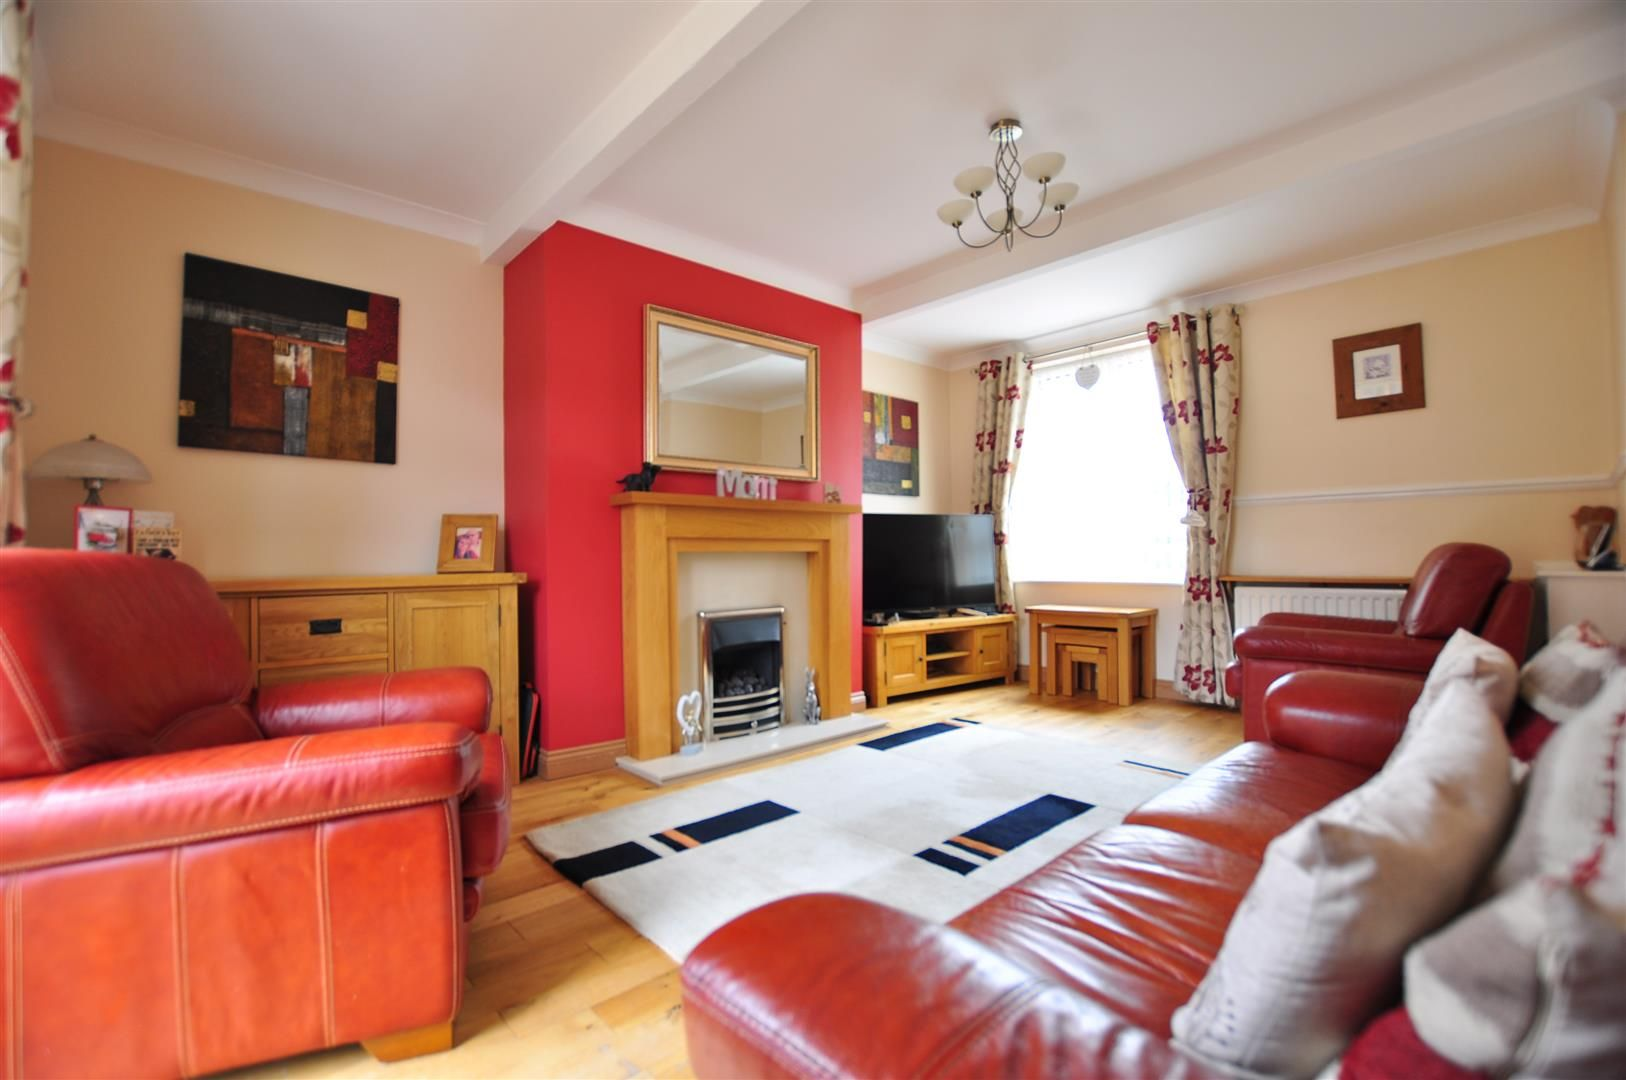 3 bed semi-detached for sale in Lower Gornal  - Property Image 4